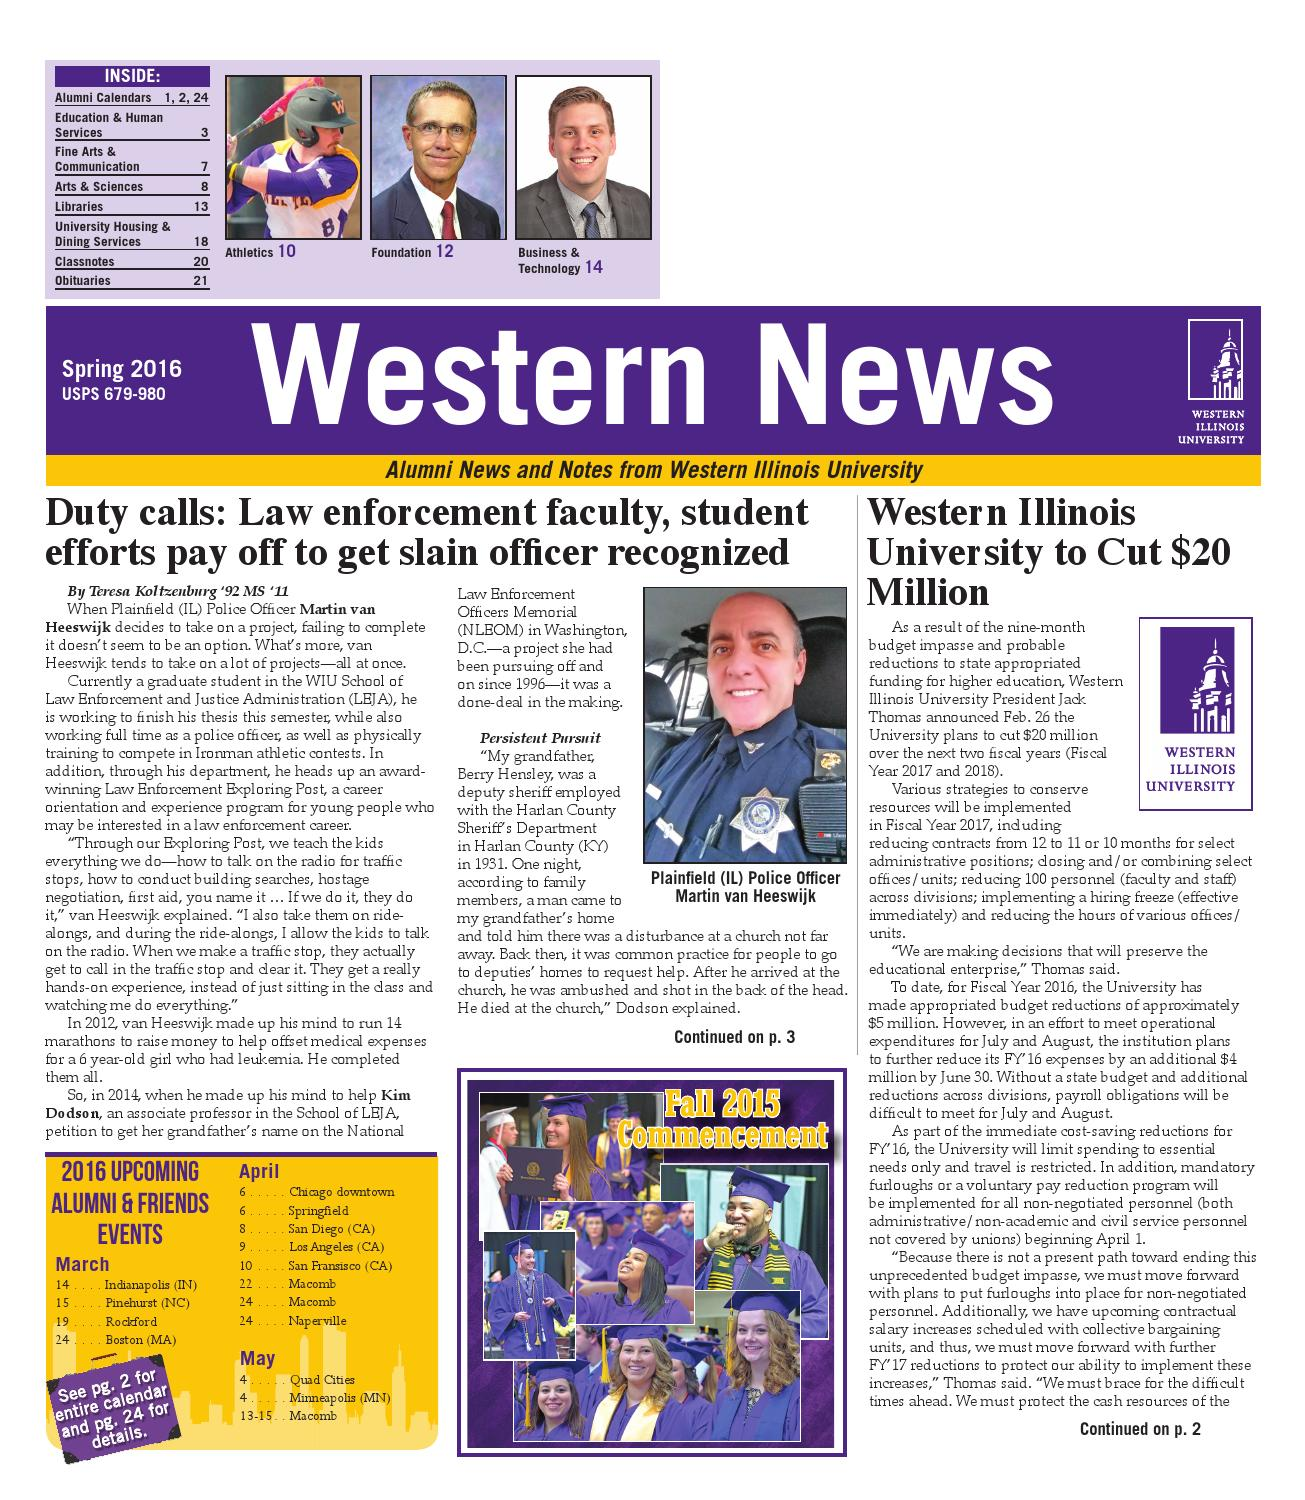 Western News Spring 2016 by Western Illinois University - issuu